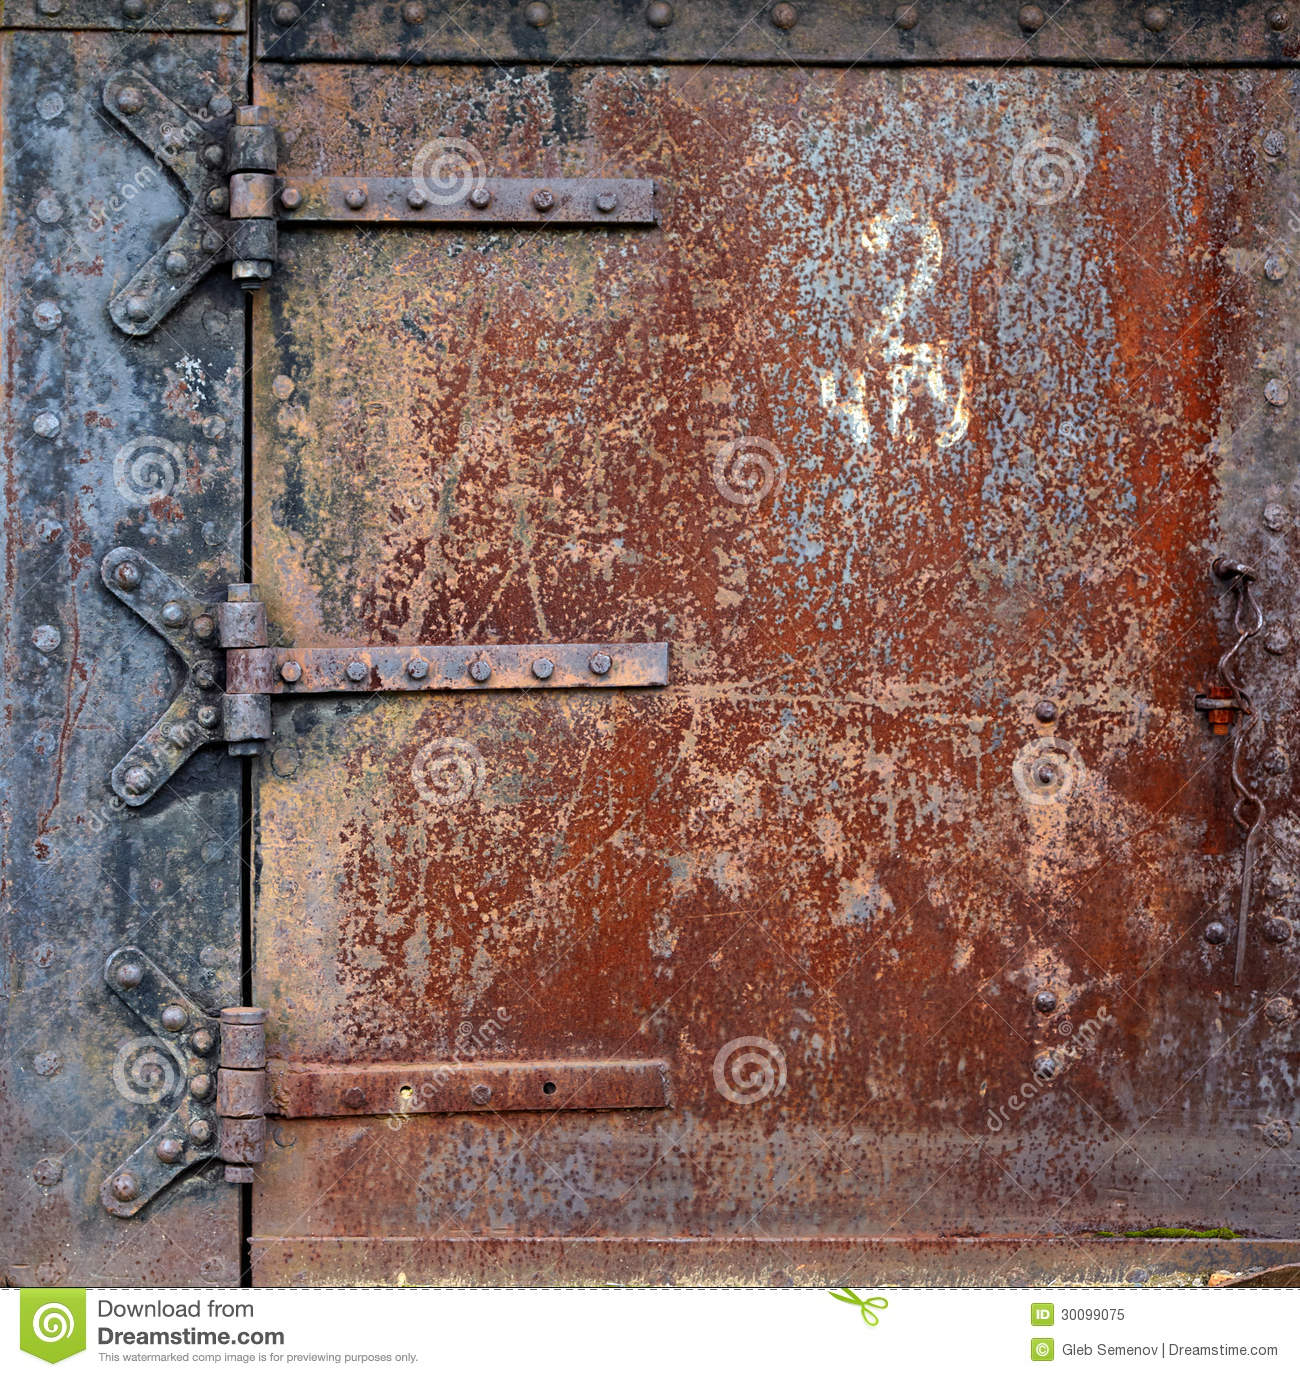 Rusty Door rusty steel door hinges royalty free stock photo - image: 30185395